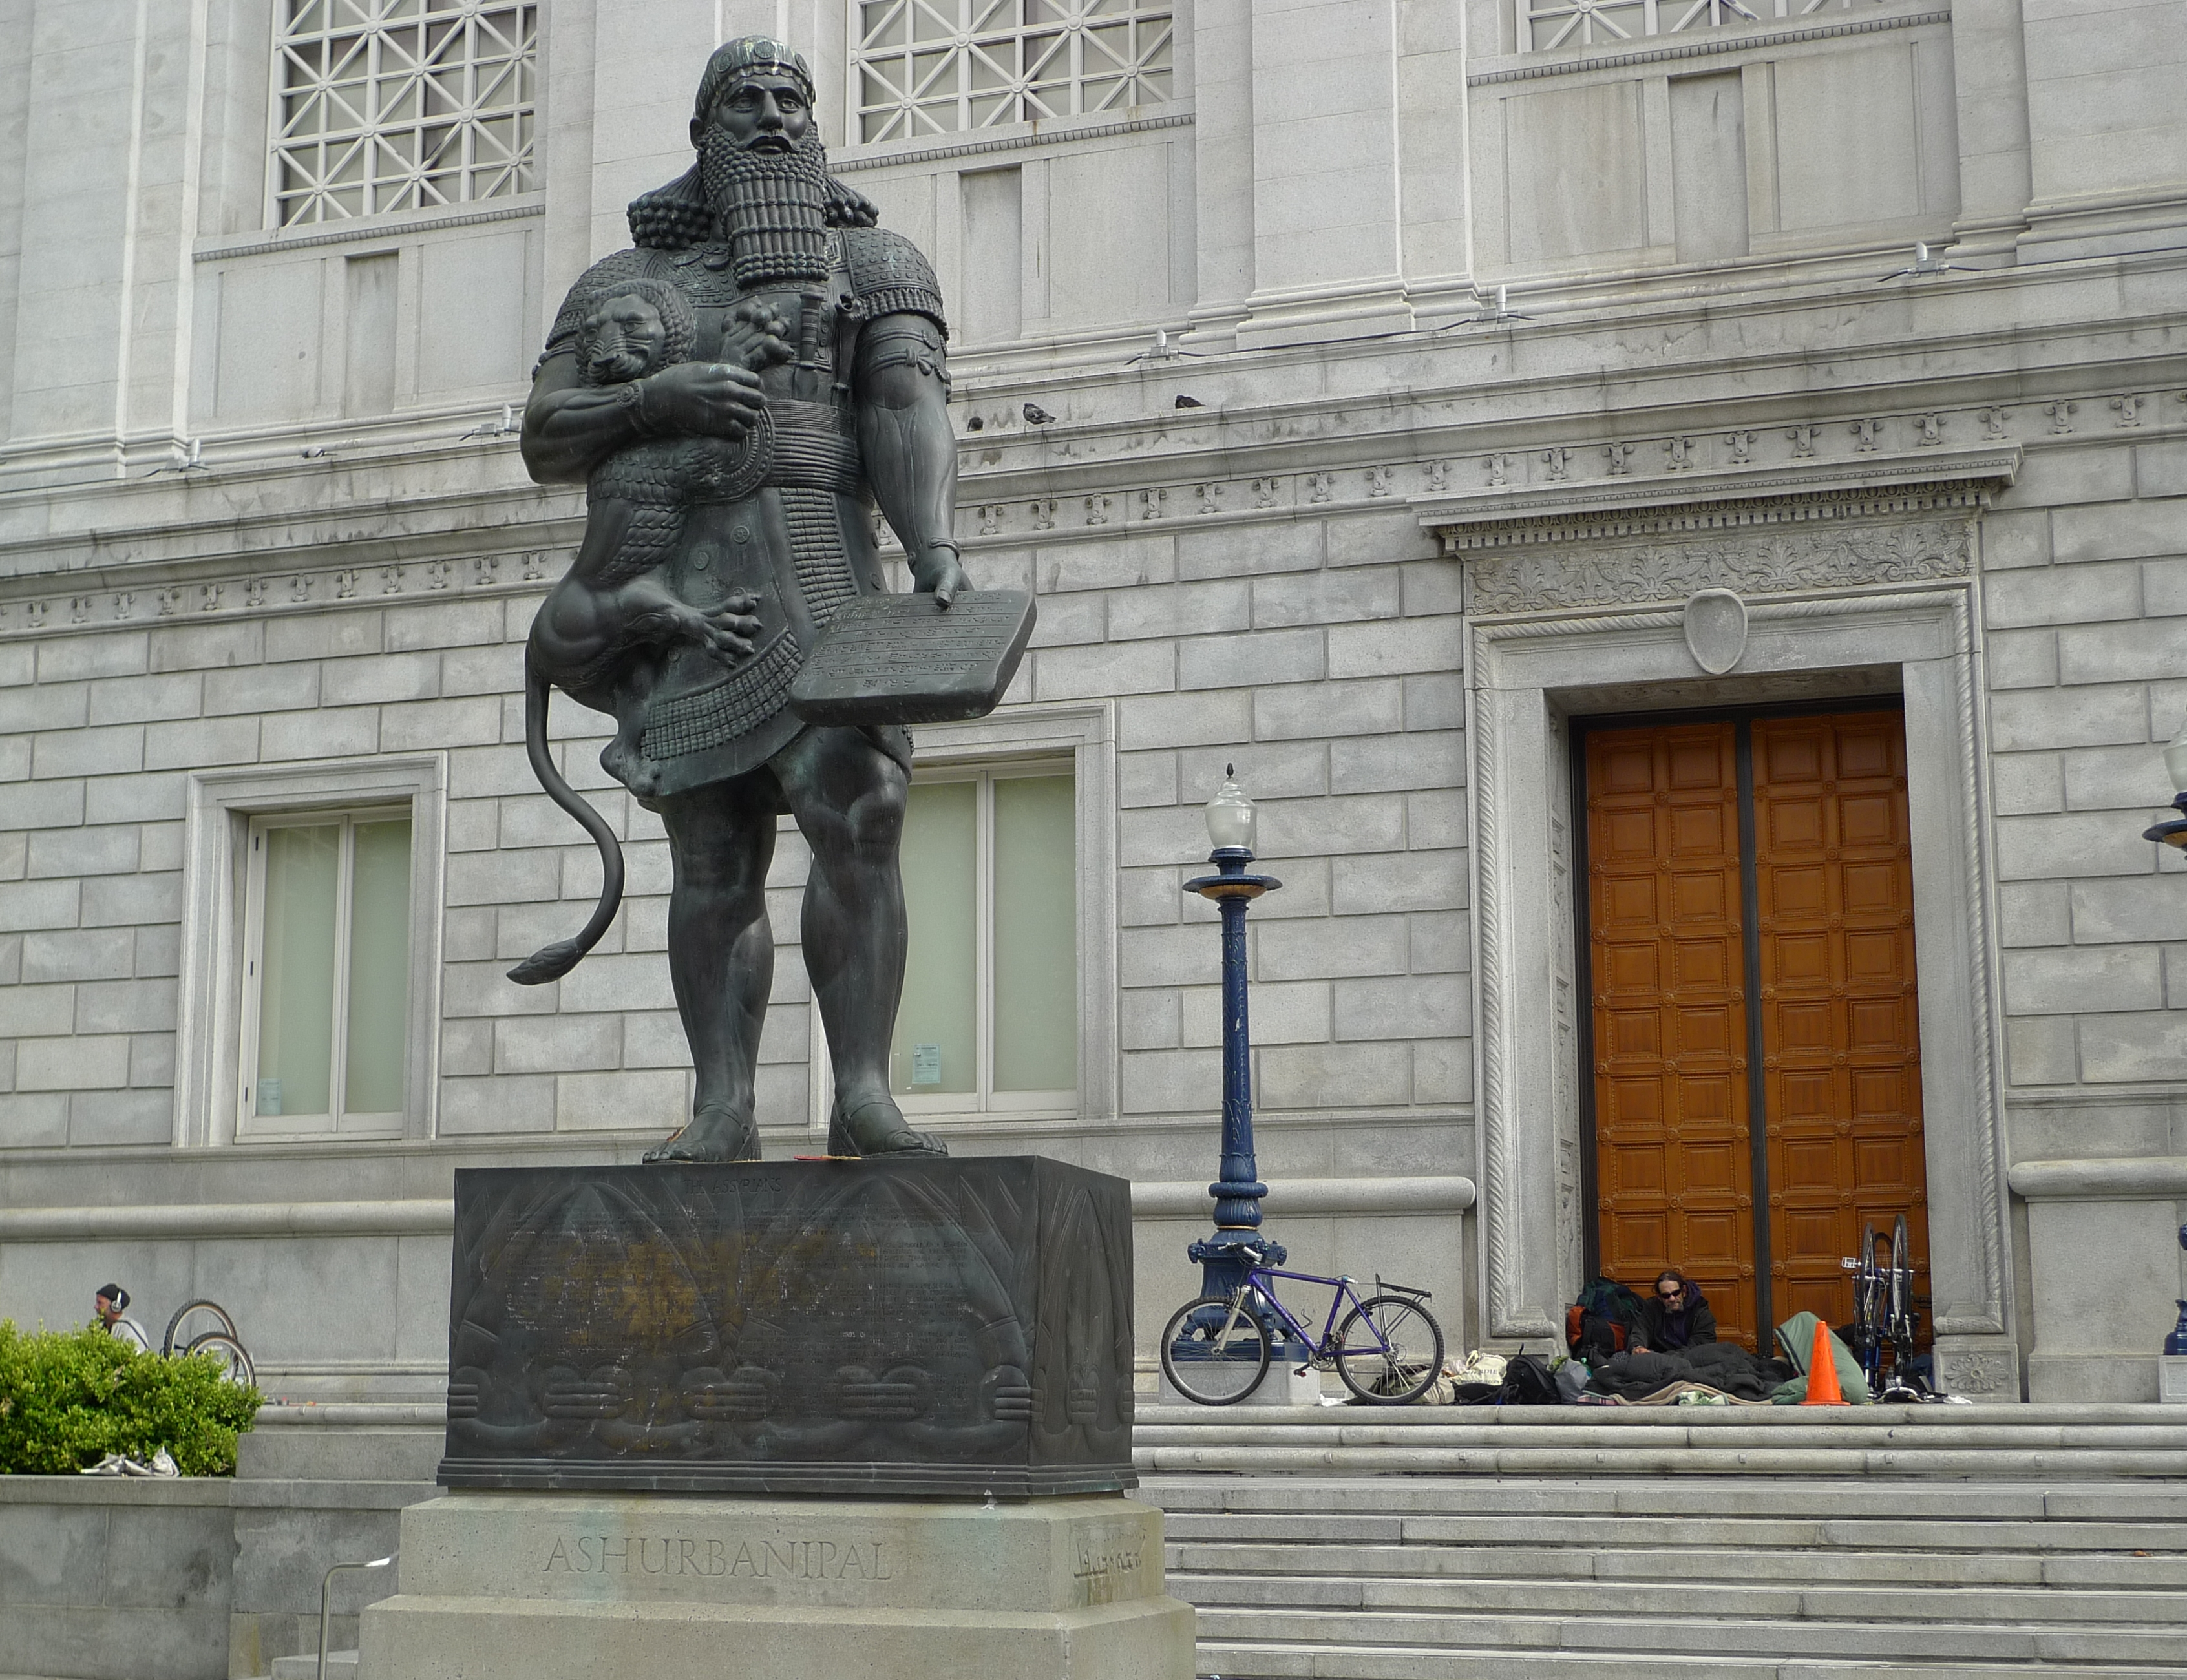 21 - giant Assyrian King Ashurbanipal, king-sized mighty man descendant of alien gods, ruled 668-627 B.C.